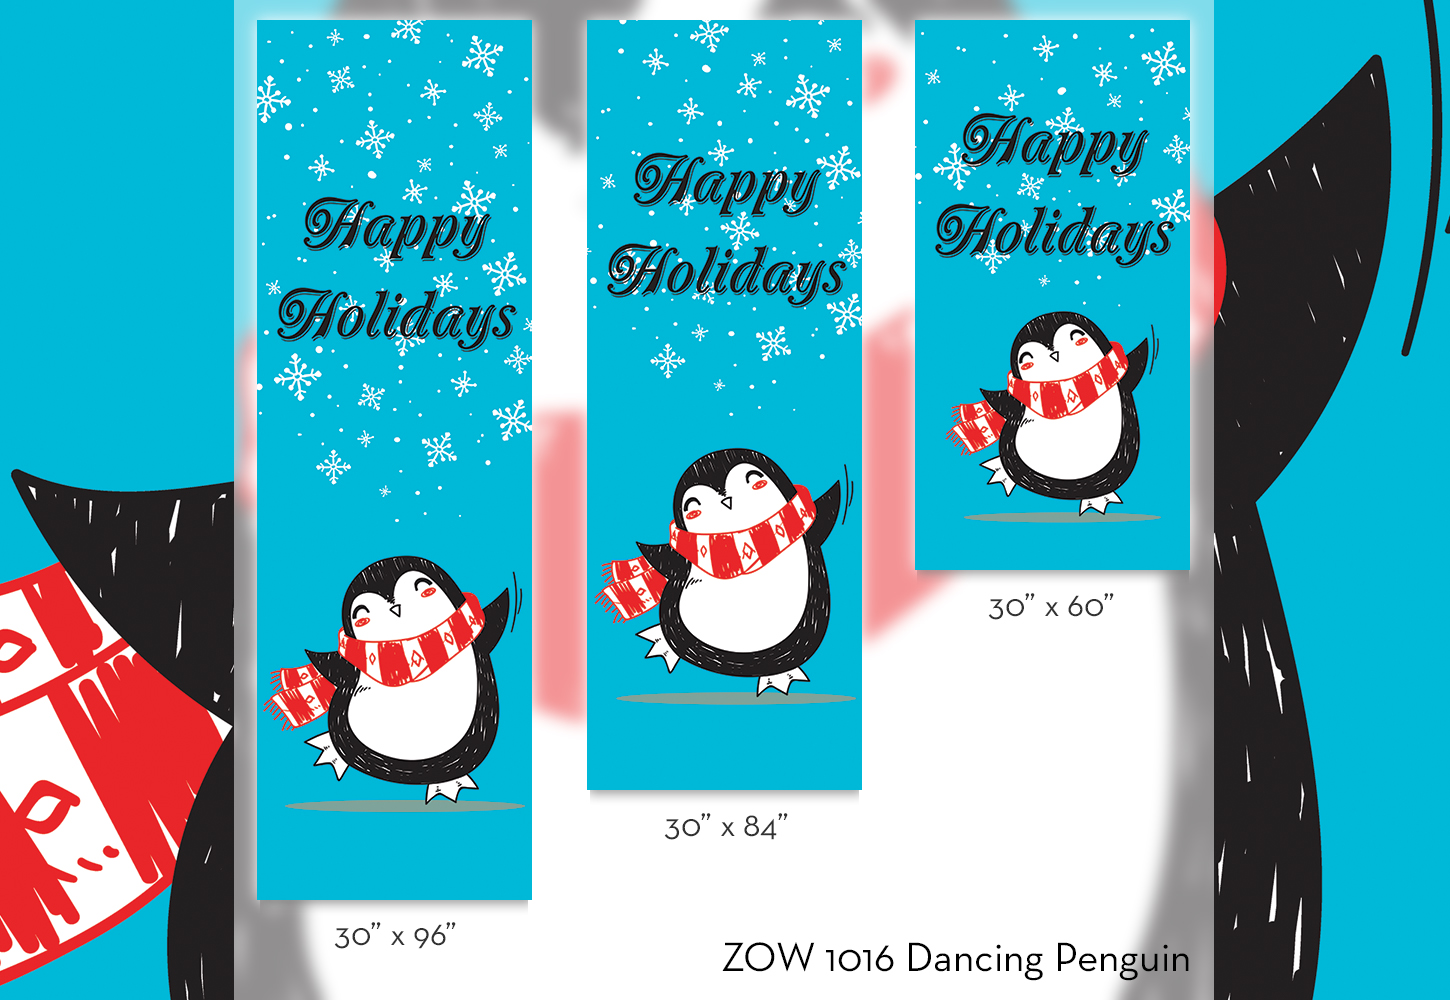 ZOW 1016 Dancing Penguin